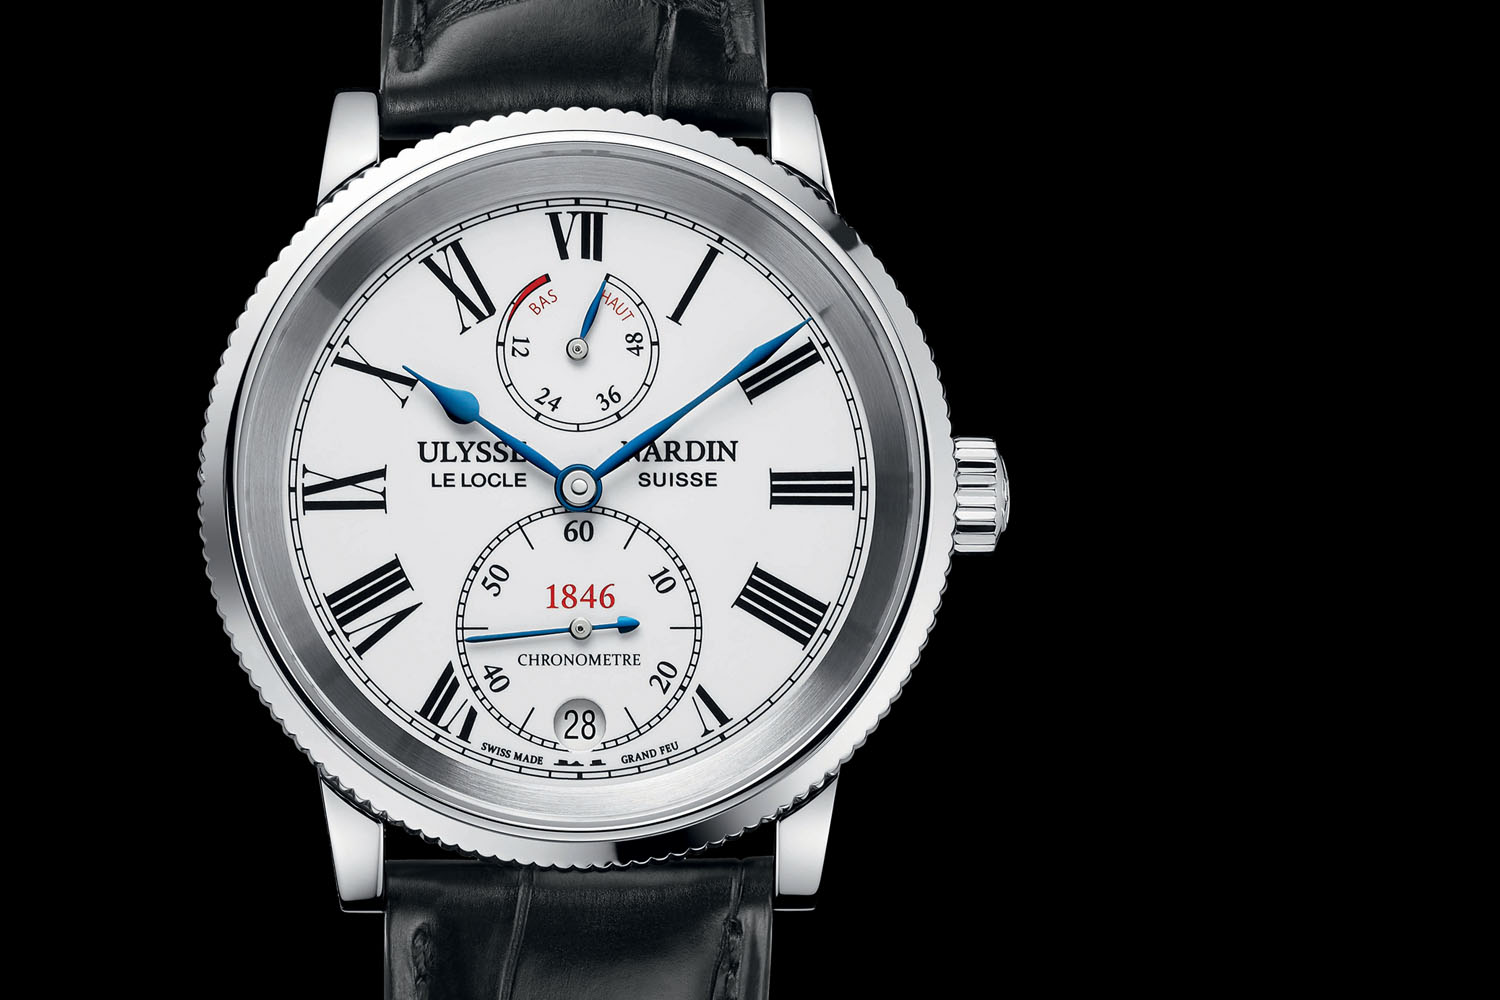 Introducing – Ulysse Nardin Marine 1846, A Classical Take On The Legendary Marine Collection